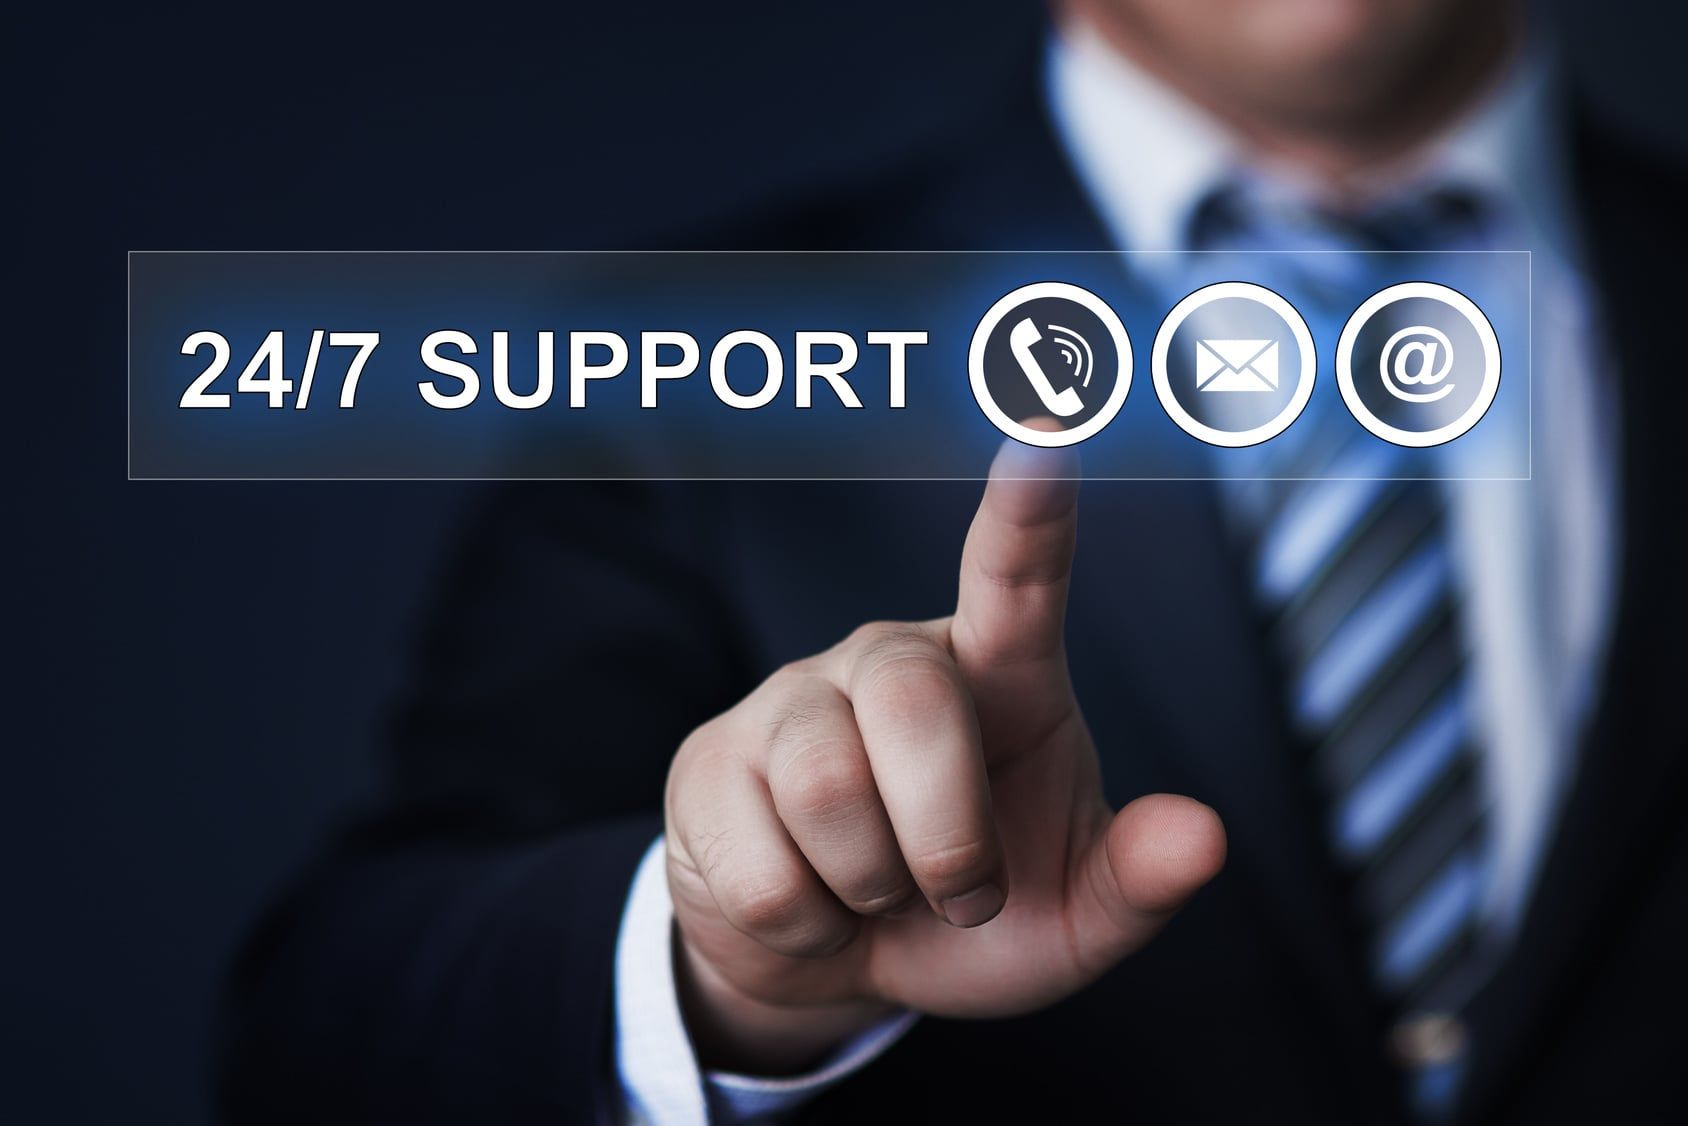 5 Unique Ways To Transform Your Business With 24/7 IT Support